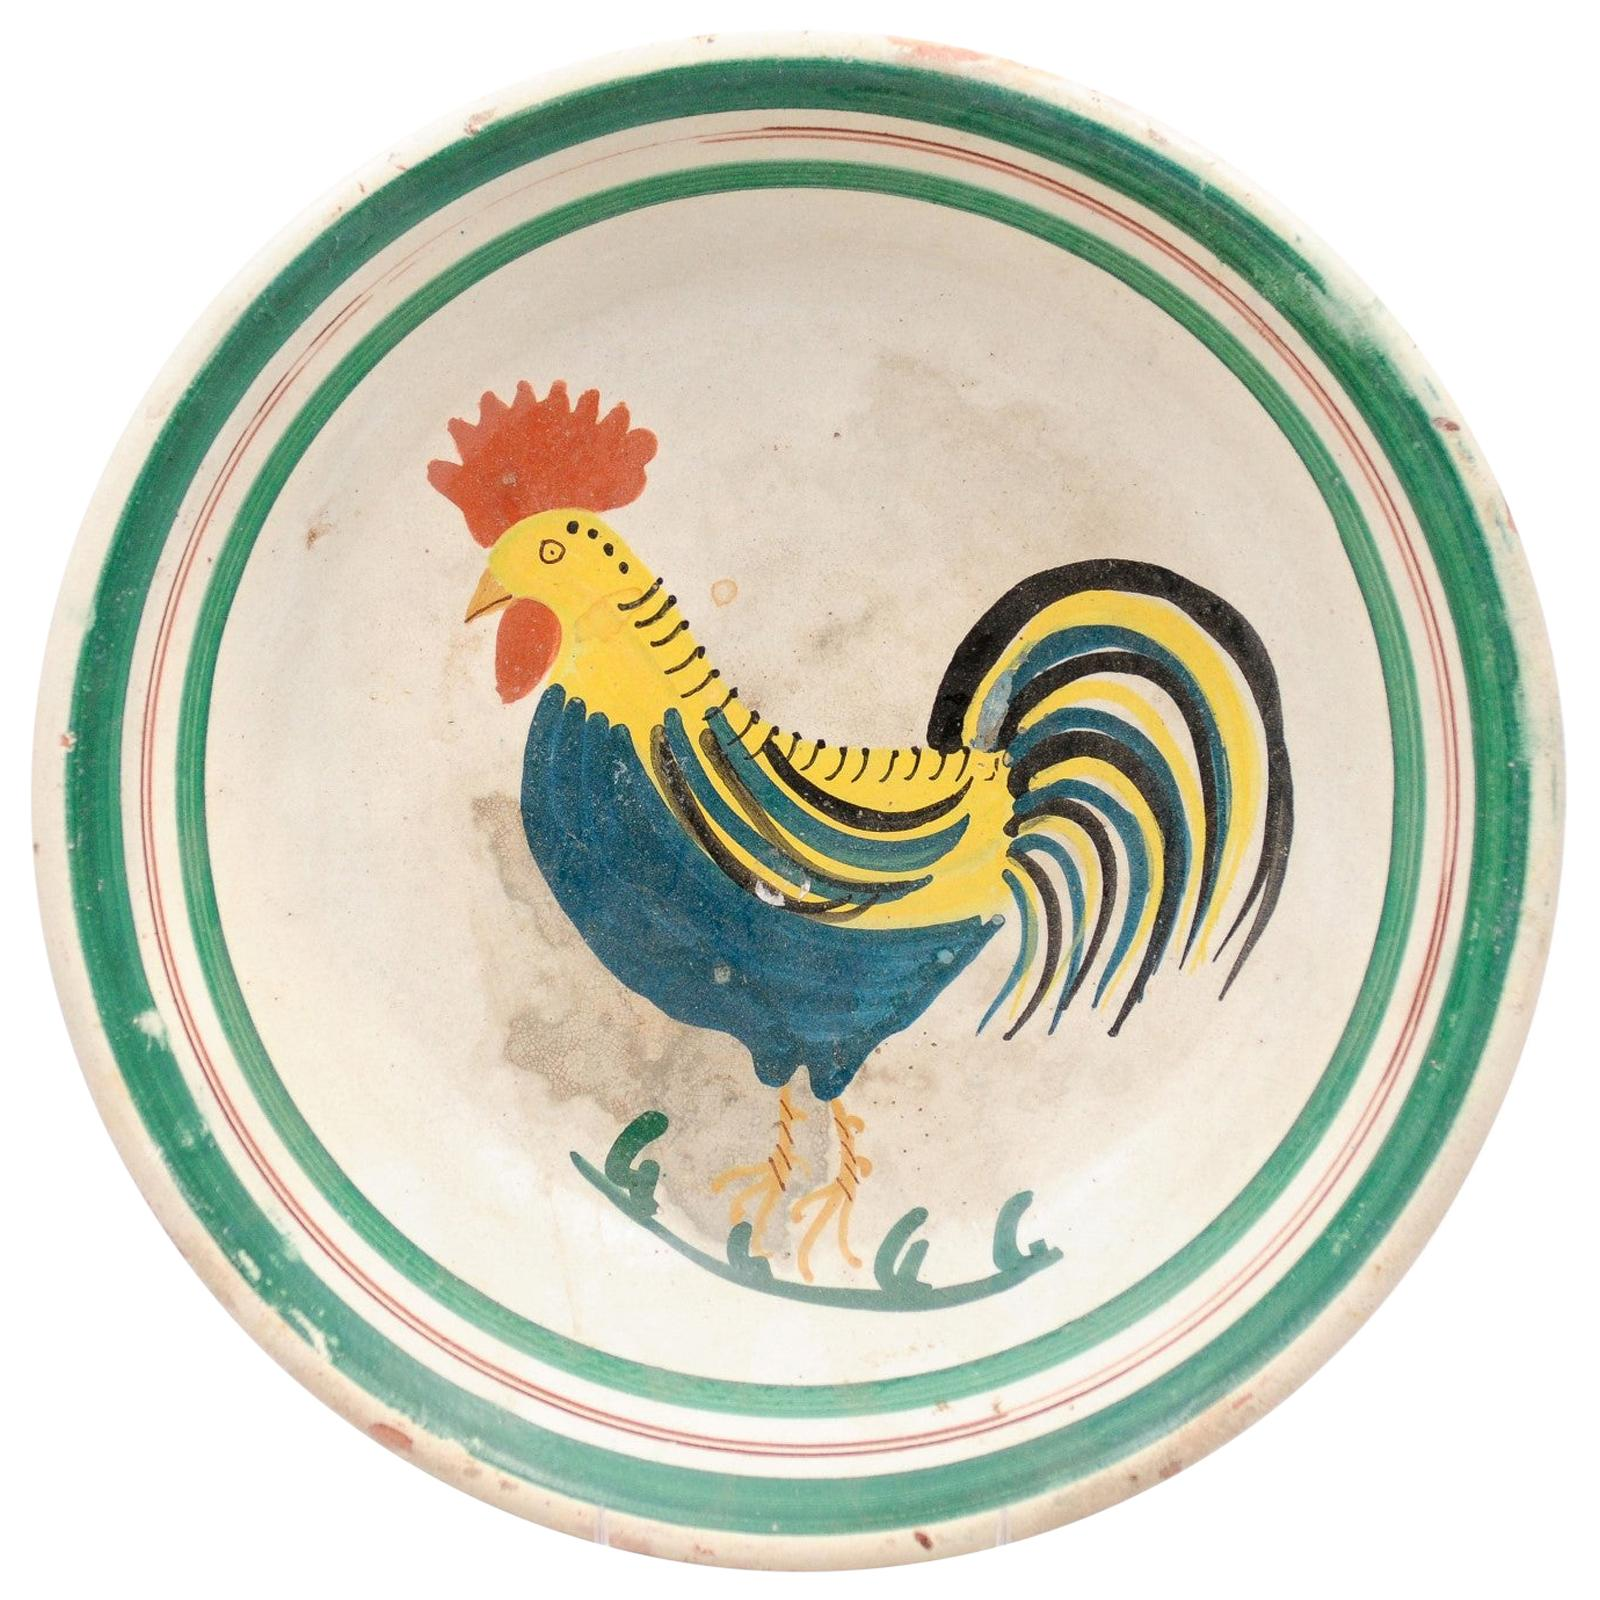 Italian Early 20th Century Pottery Bowl with Rooster Motif and Green Border